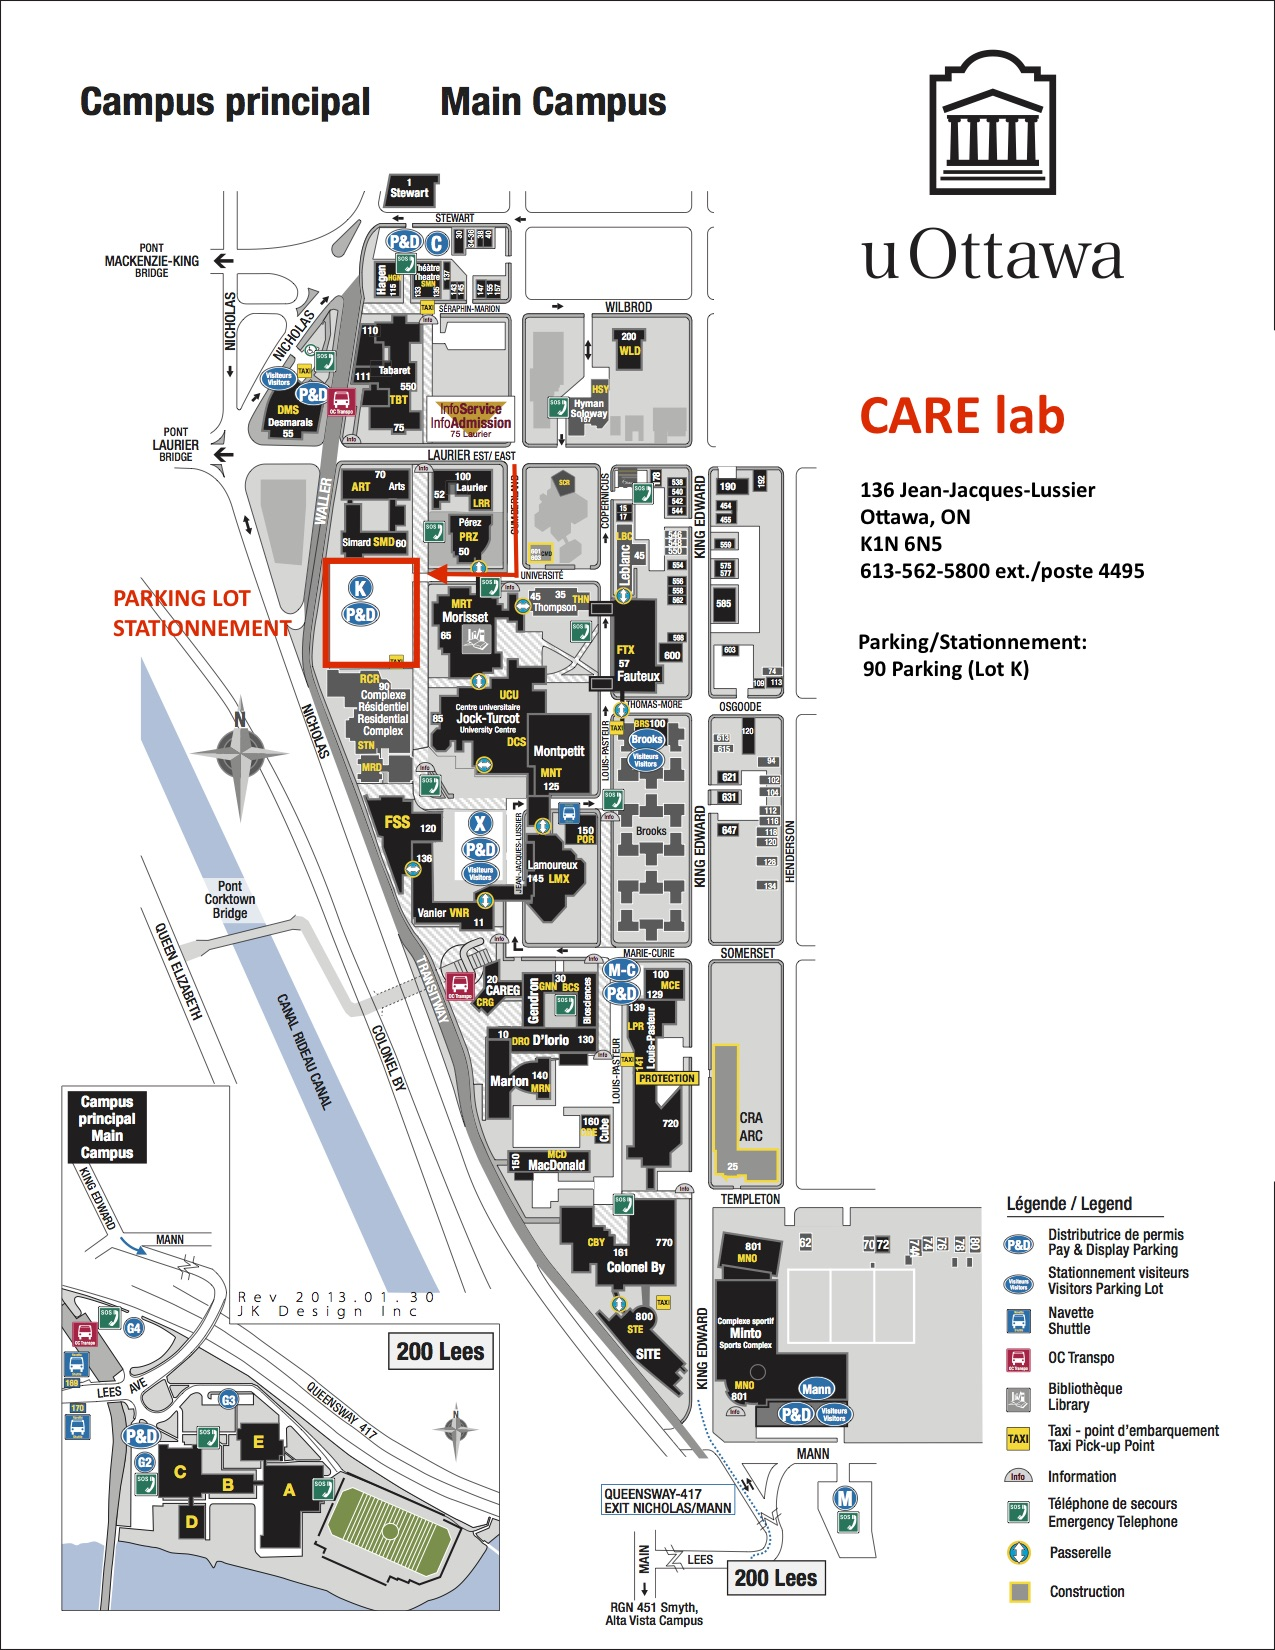 uOttawa Main Campus map with red outline of CARElab location